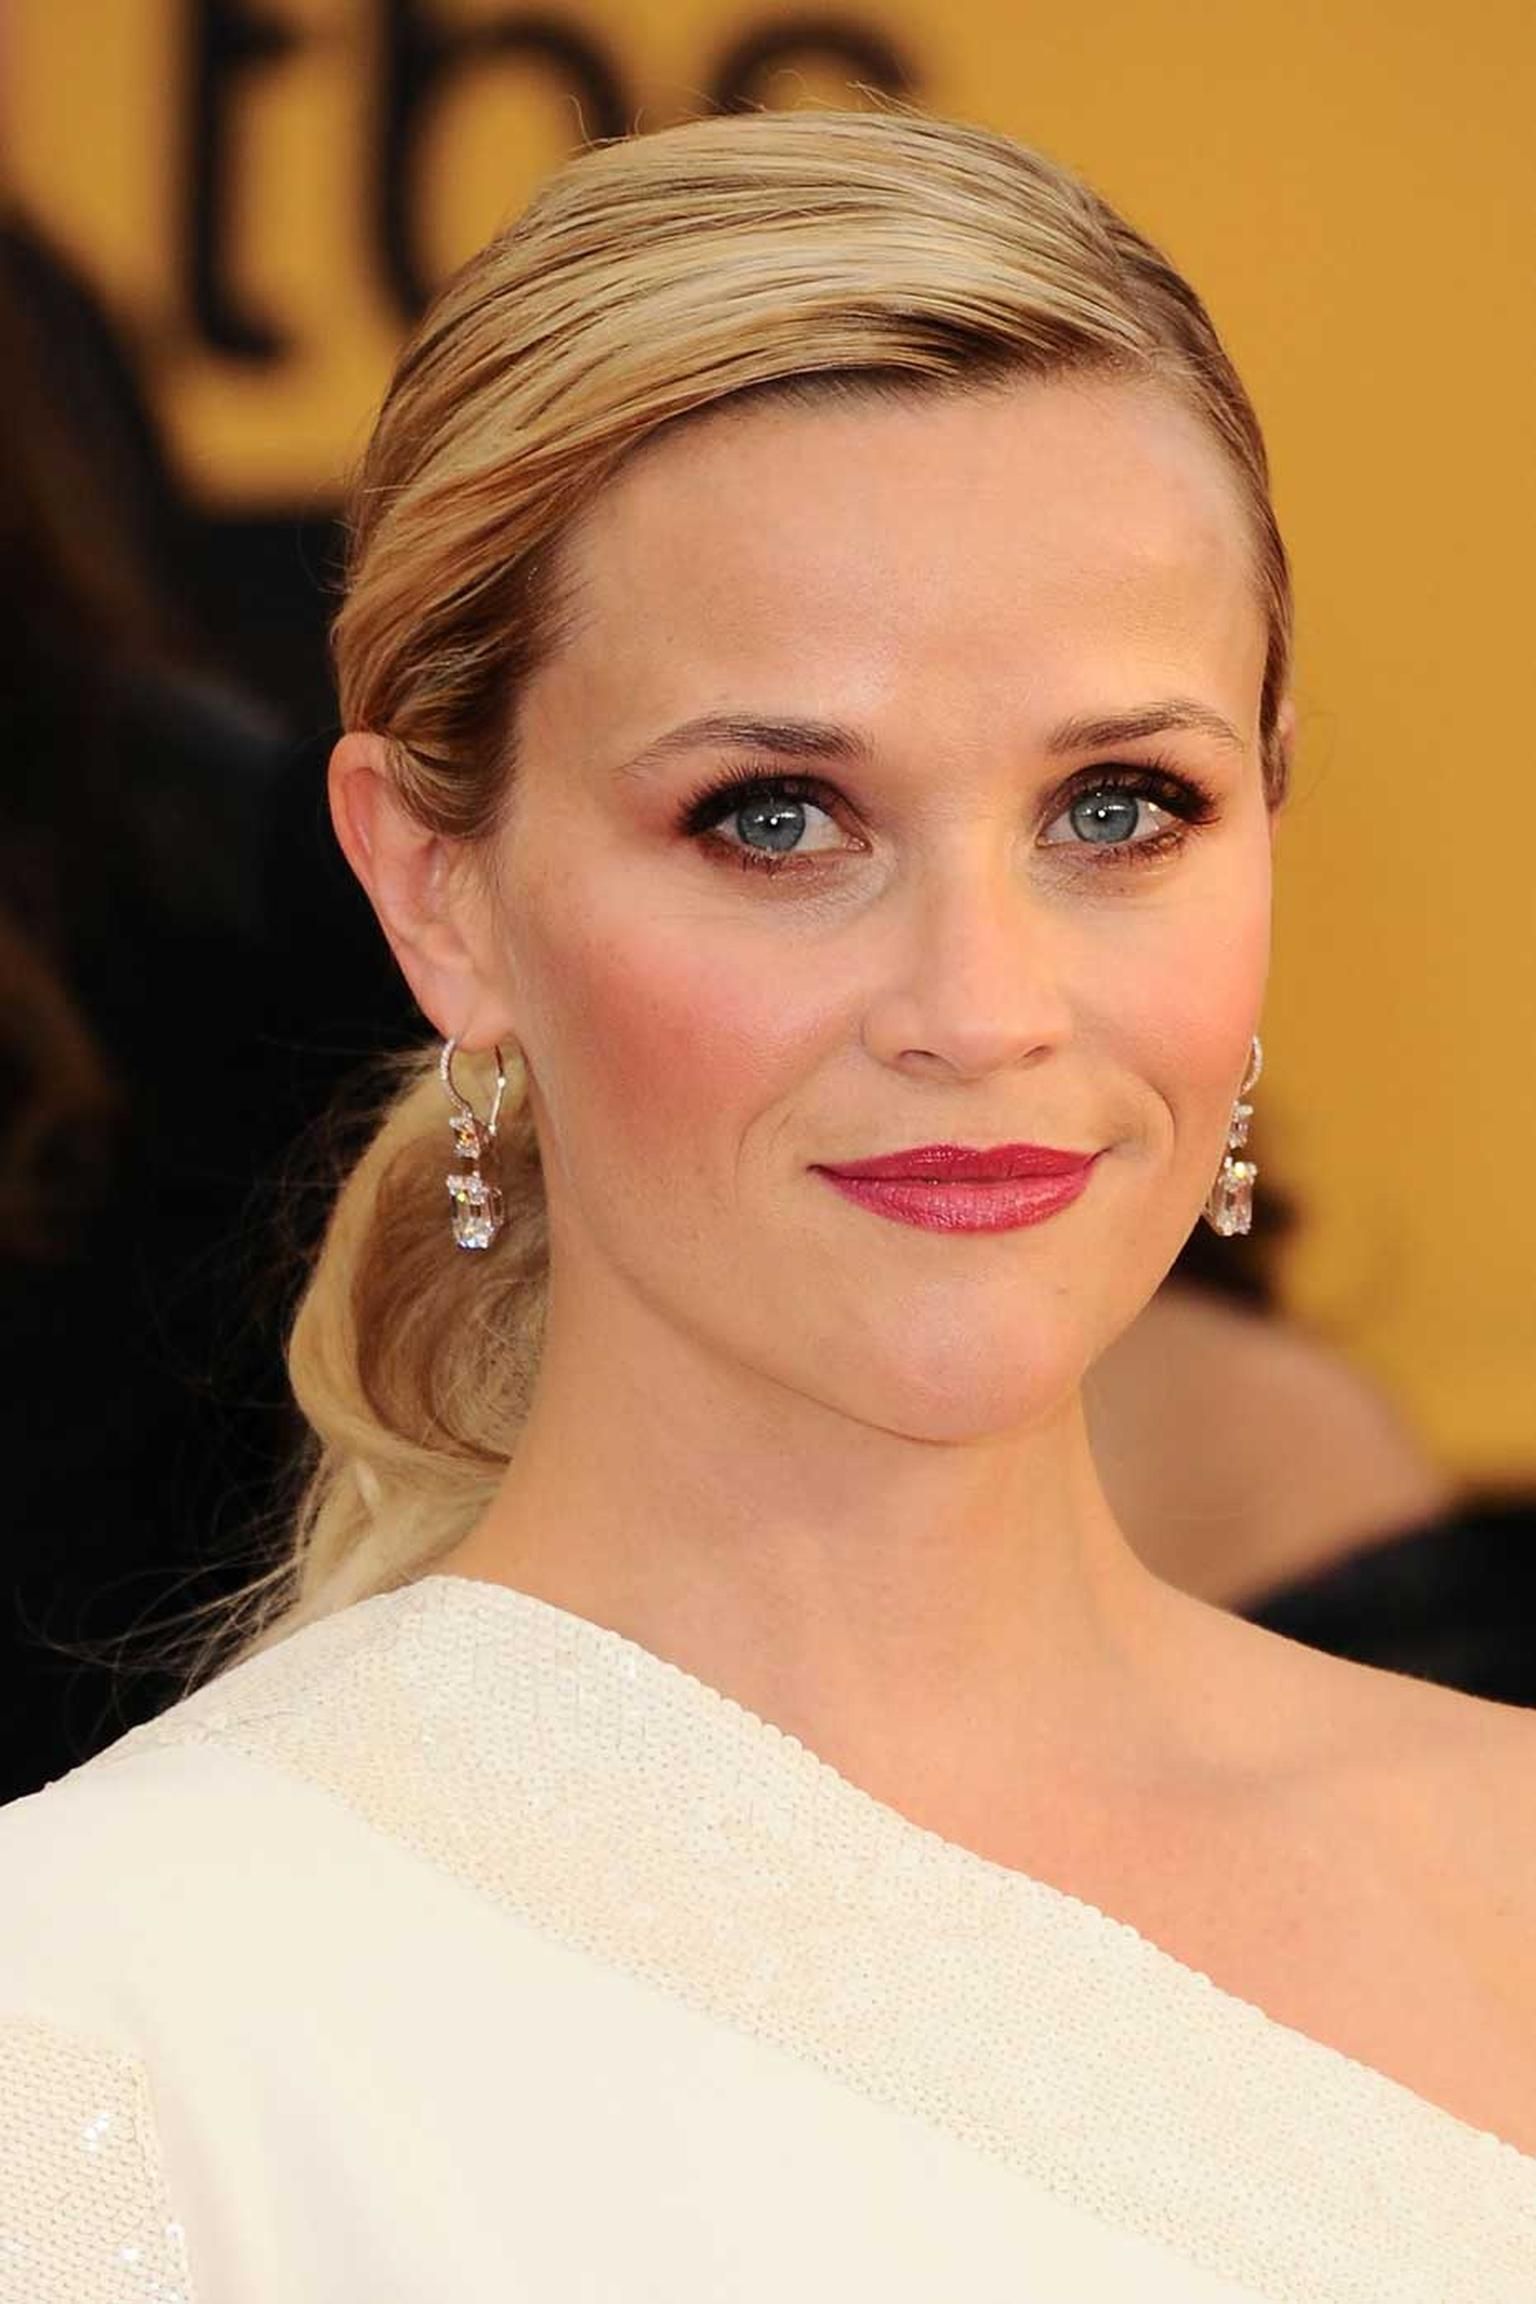 Reese Witherspoon chose stunning 9.20ct emerald-cut diamond drop Harry Winston earrings to dazzle on the red carpet at the 2015 SAG Awards. (Kevork Djansezian/Getty Images).